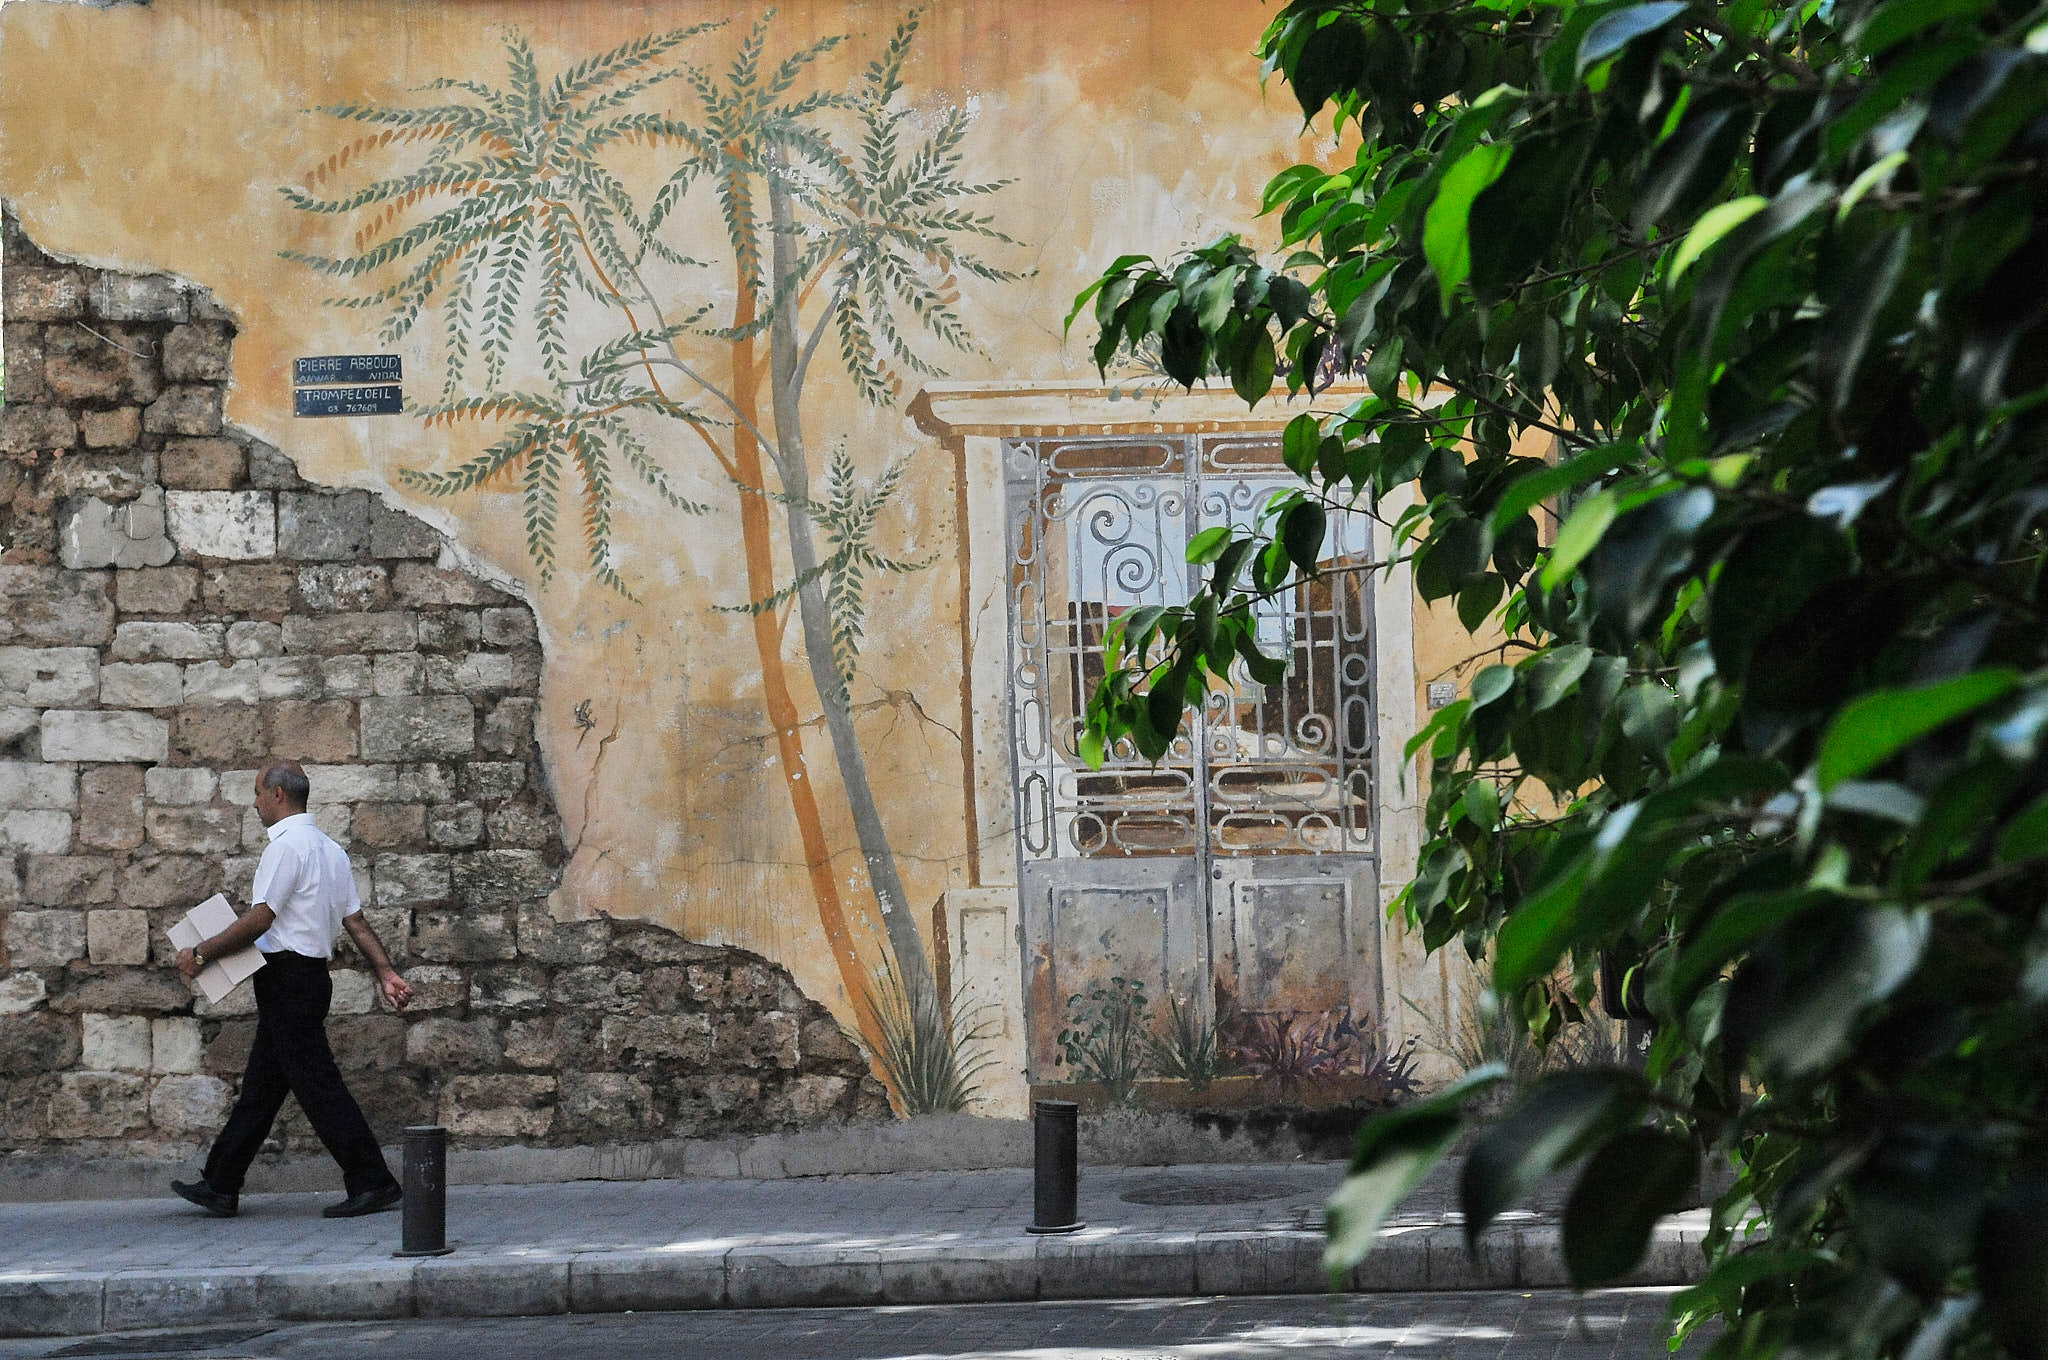 A man walks by a partially peeled wall displaying a trompe l'oeil that does not fully disguise its run-down state. Beirut, 2009.